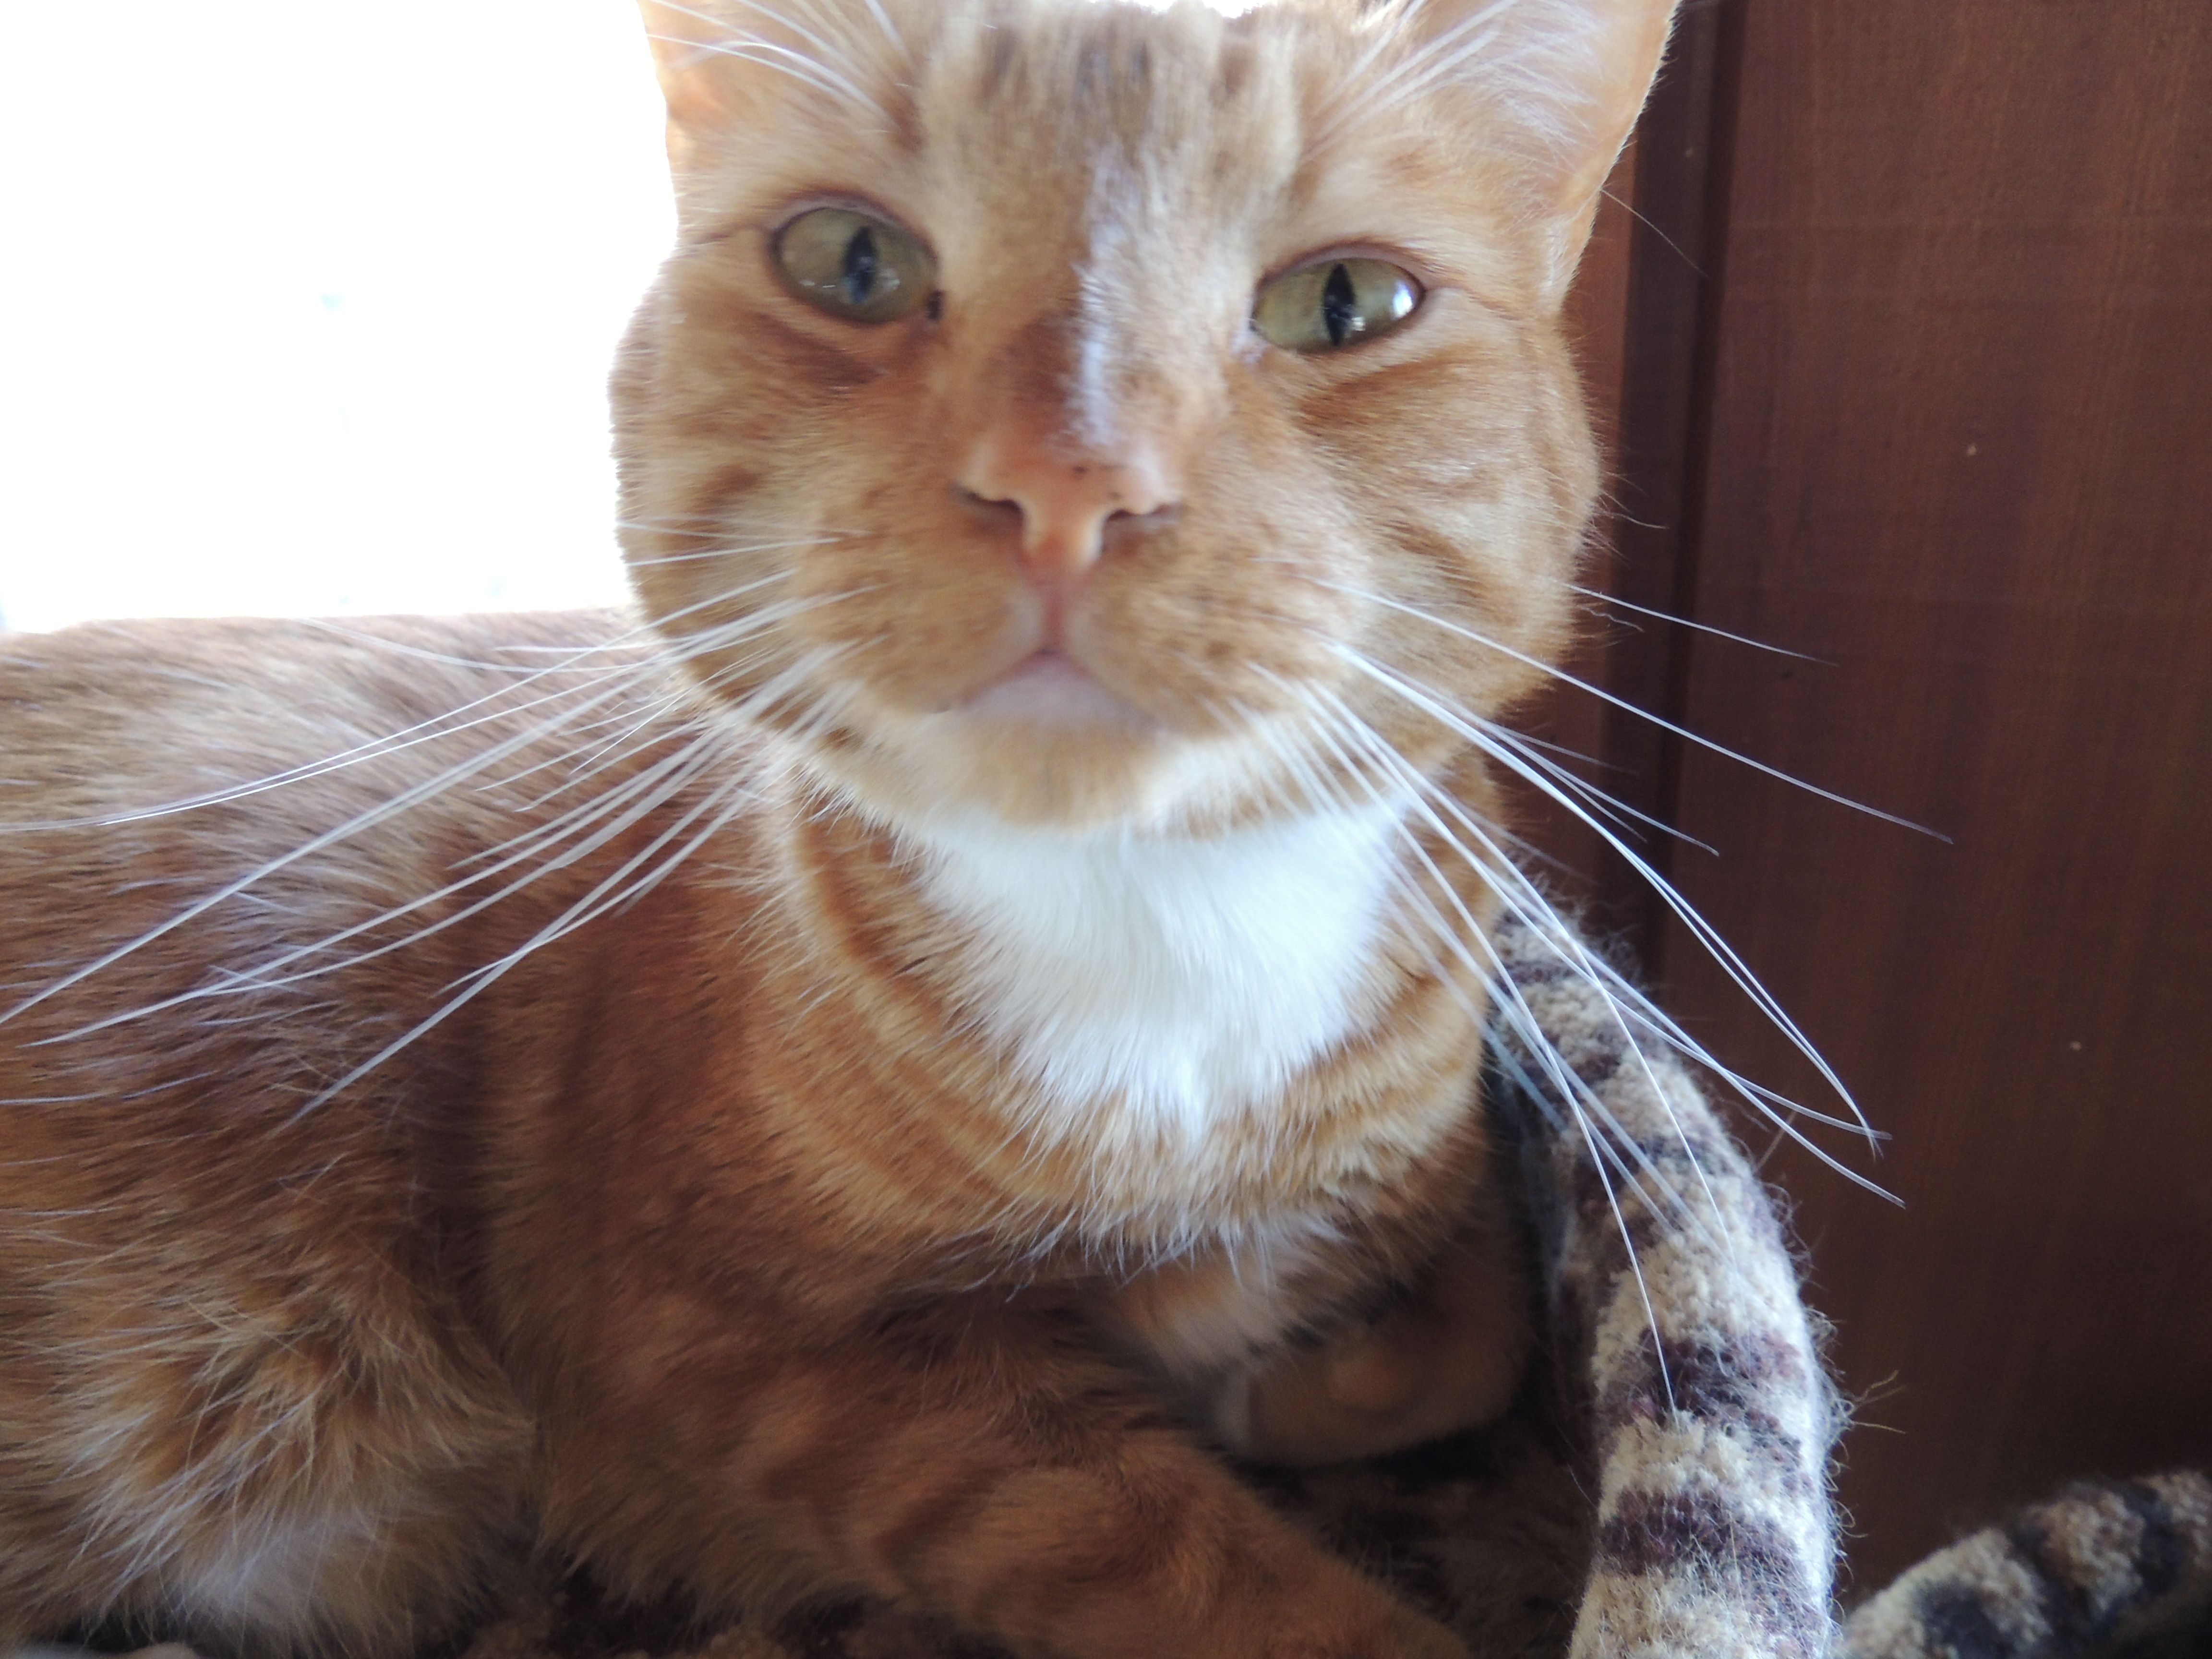 Color cats like - Orange Soft Paws Are The Perfect Harmony For Marmalade Cats Like Luke Here